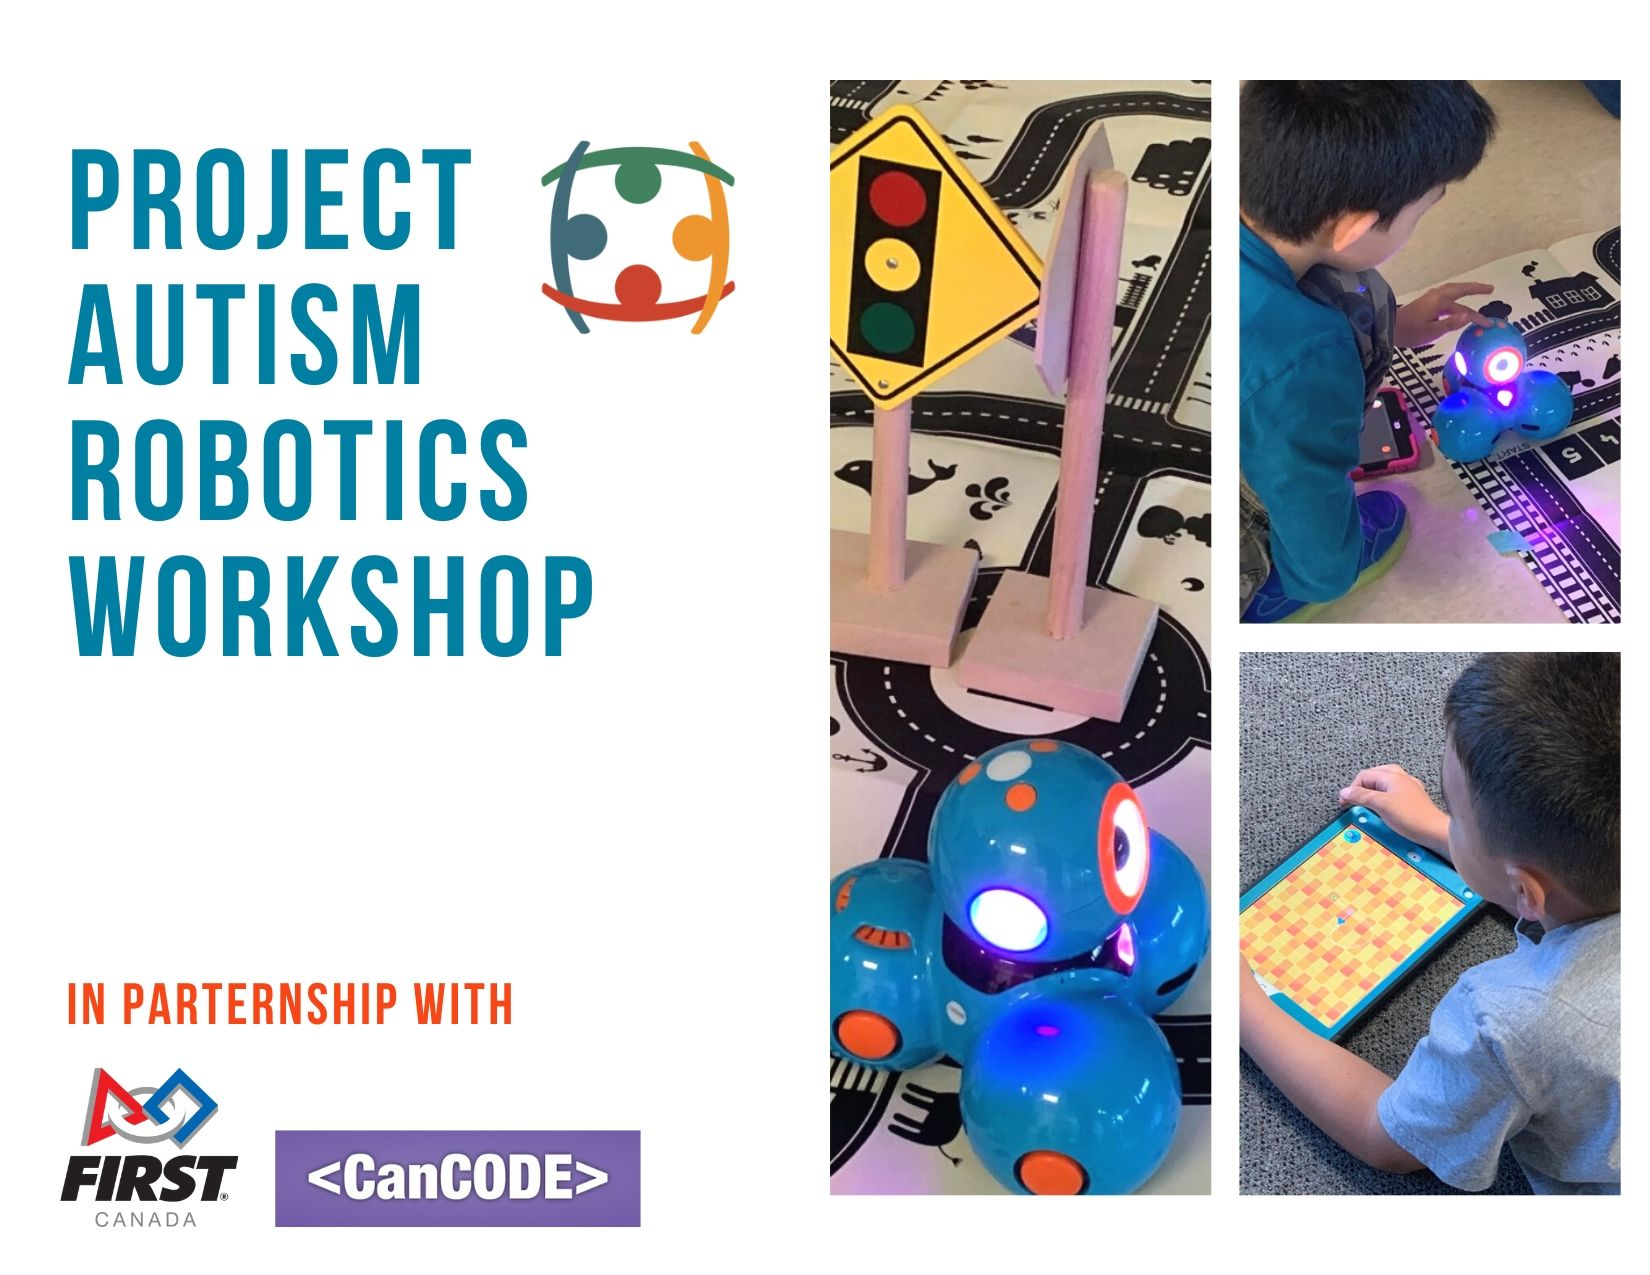 Project Autism Workshops in Partnership with FIRST Robotics Canada